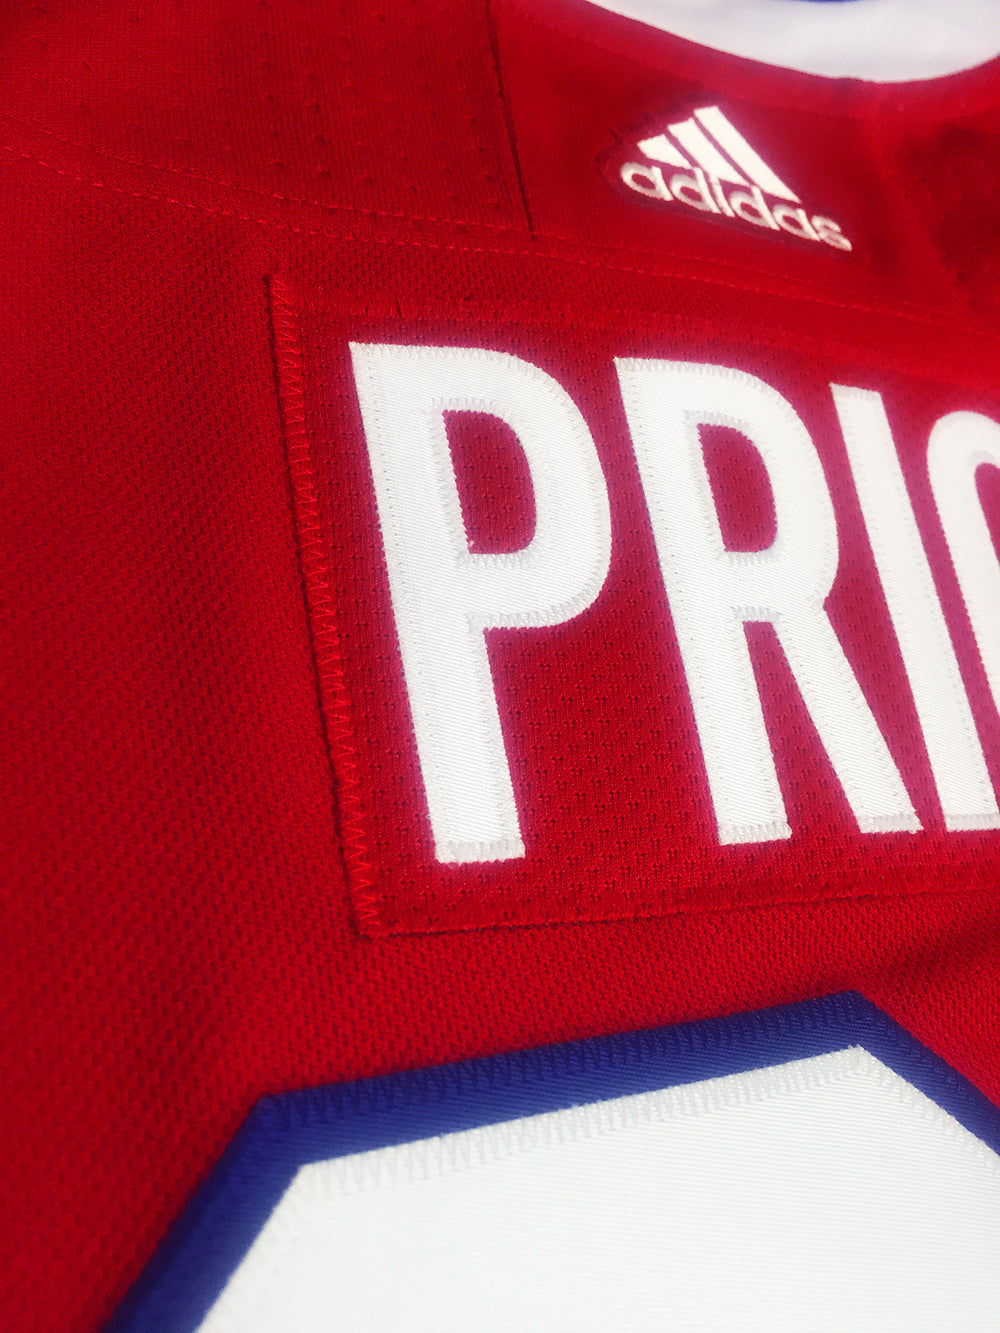 48760448f CAREY PRICE MONTREAL CANADIENS AUTHENTIC PRO ADIDAS NHL JERSEY ...